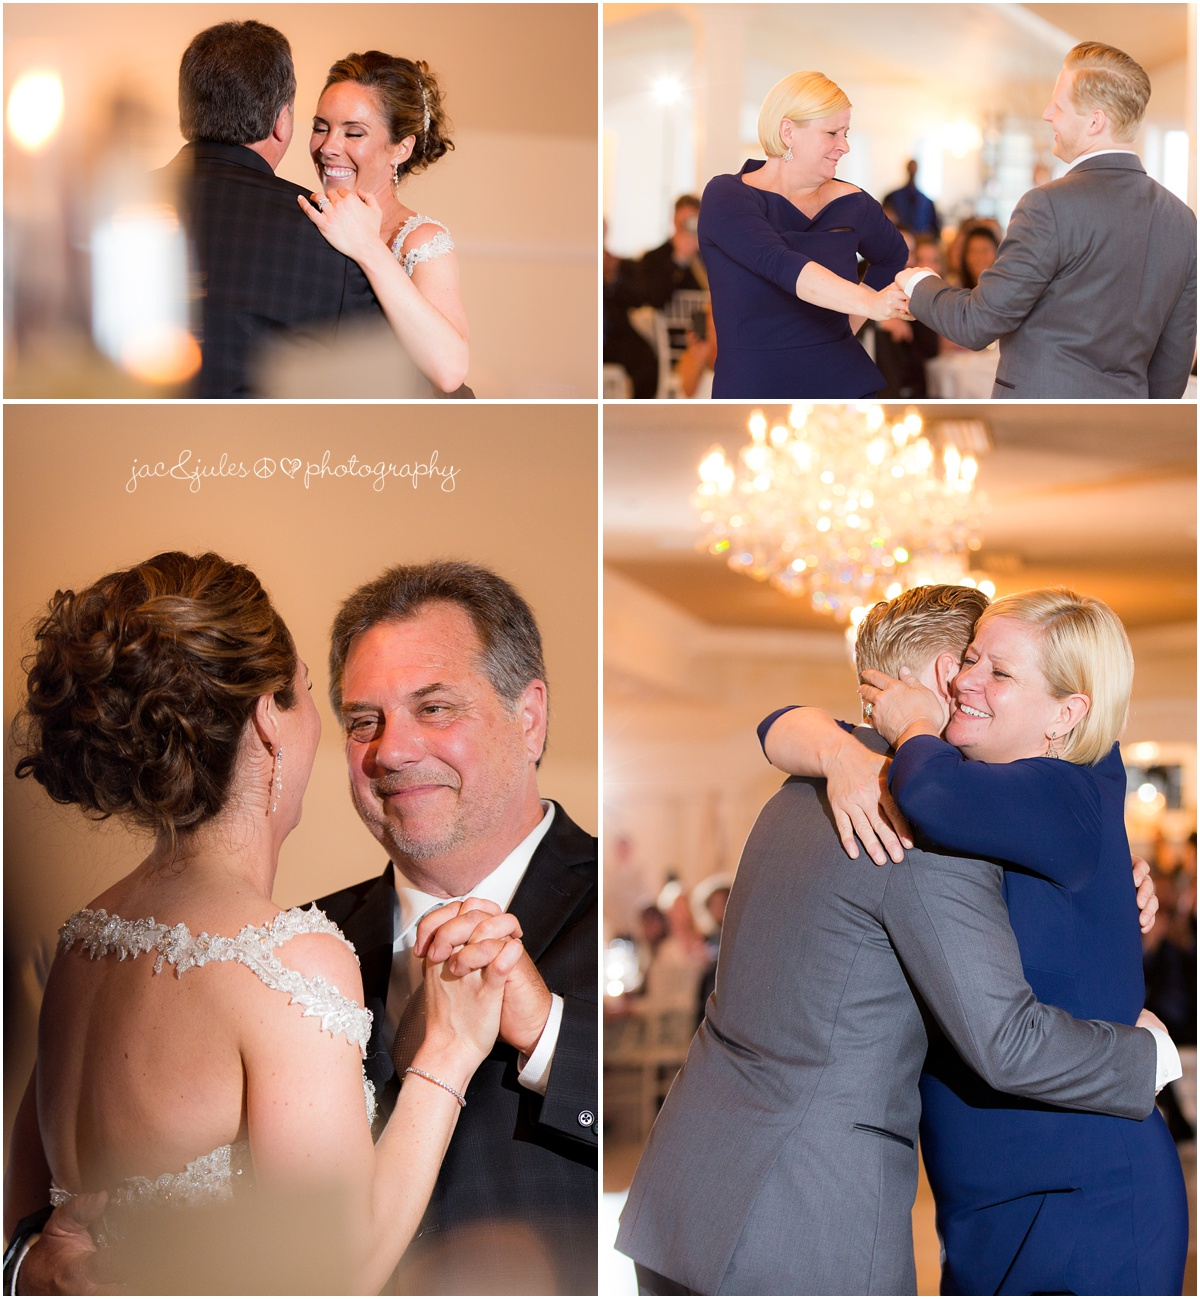 parent dances, father and daughter, mother and son, bride, groom.